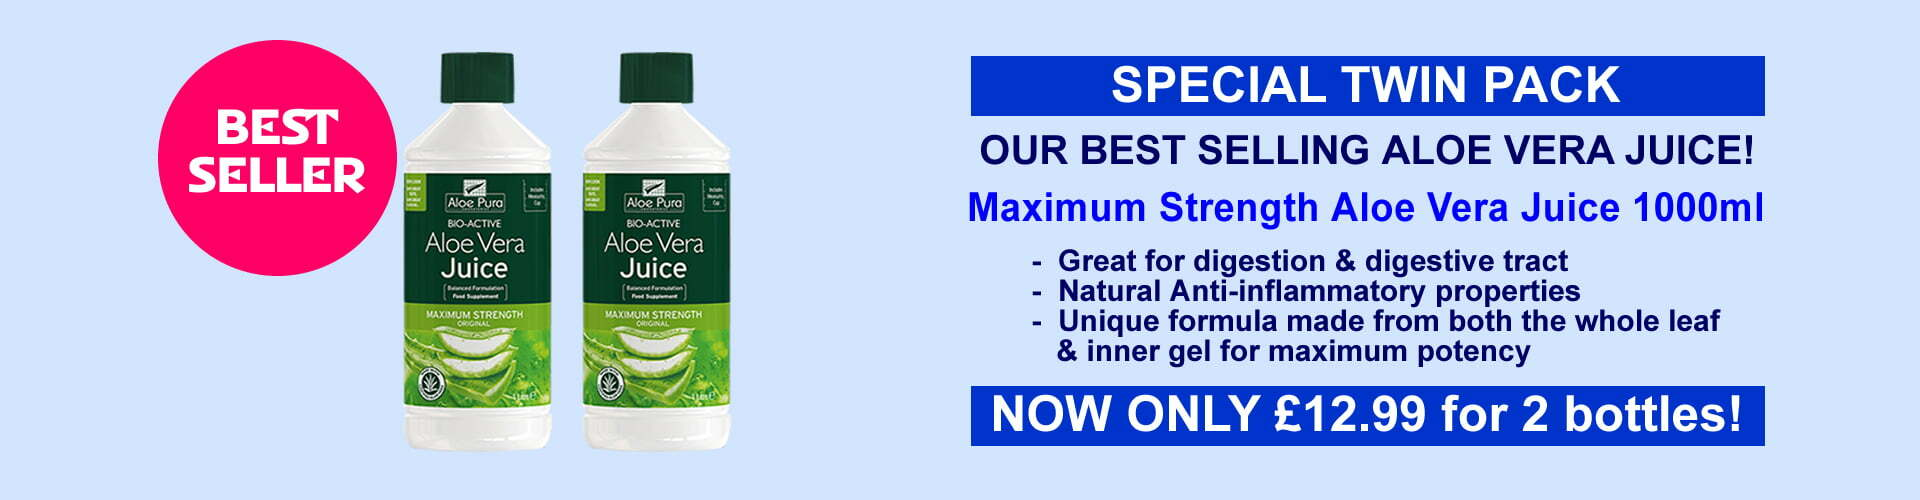 Our best selling Maximum Strength Aloe Vera Juice 1000ml from Aloe Pura utilising the inner leaf & whole leaf in production, this product is great for digestion problems. Order now whilst stocks last - only £12.99 for 2 bottles!